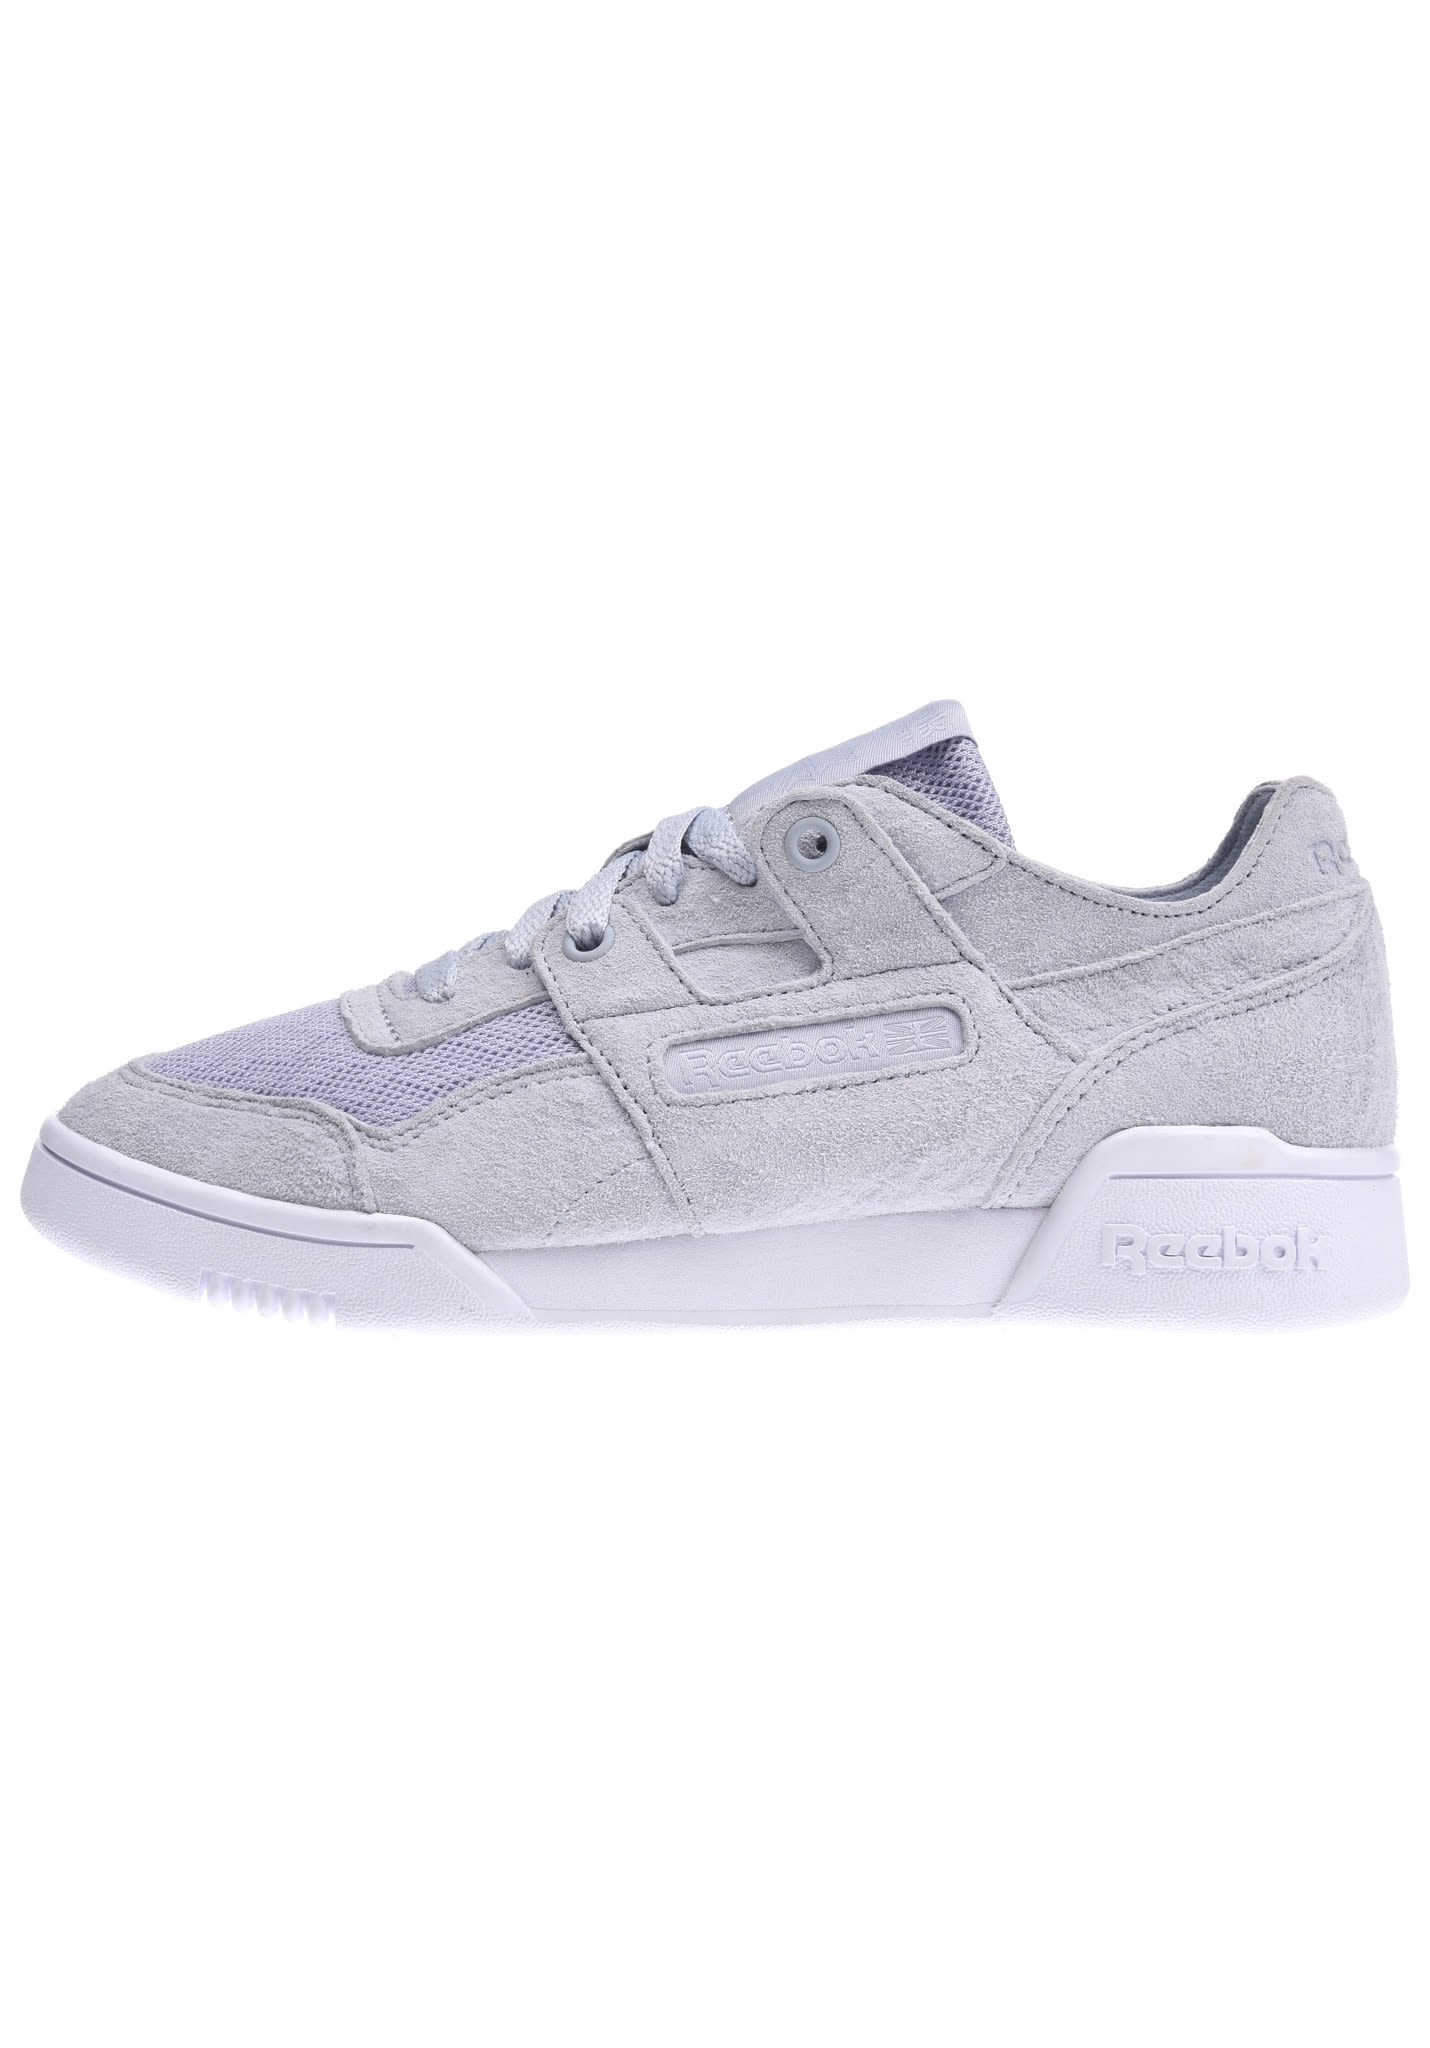 578ad1abe1f Reebok W O Lo Plus Cold Pa - Sneakers for Women - Grey - Planet Sports